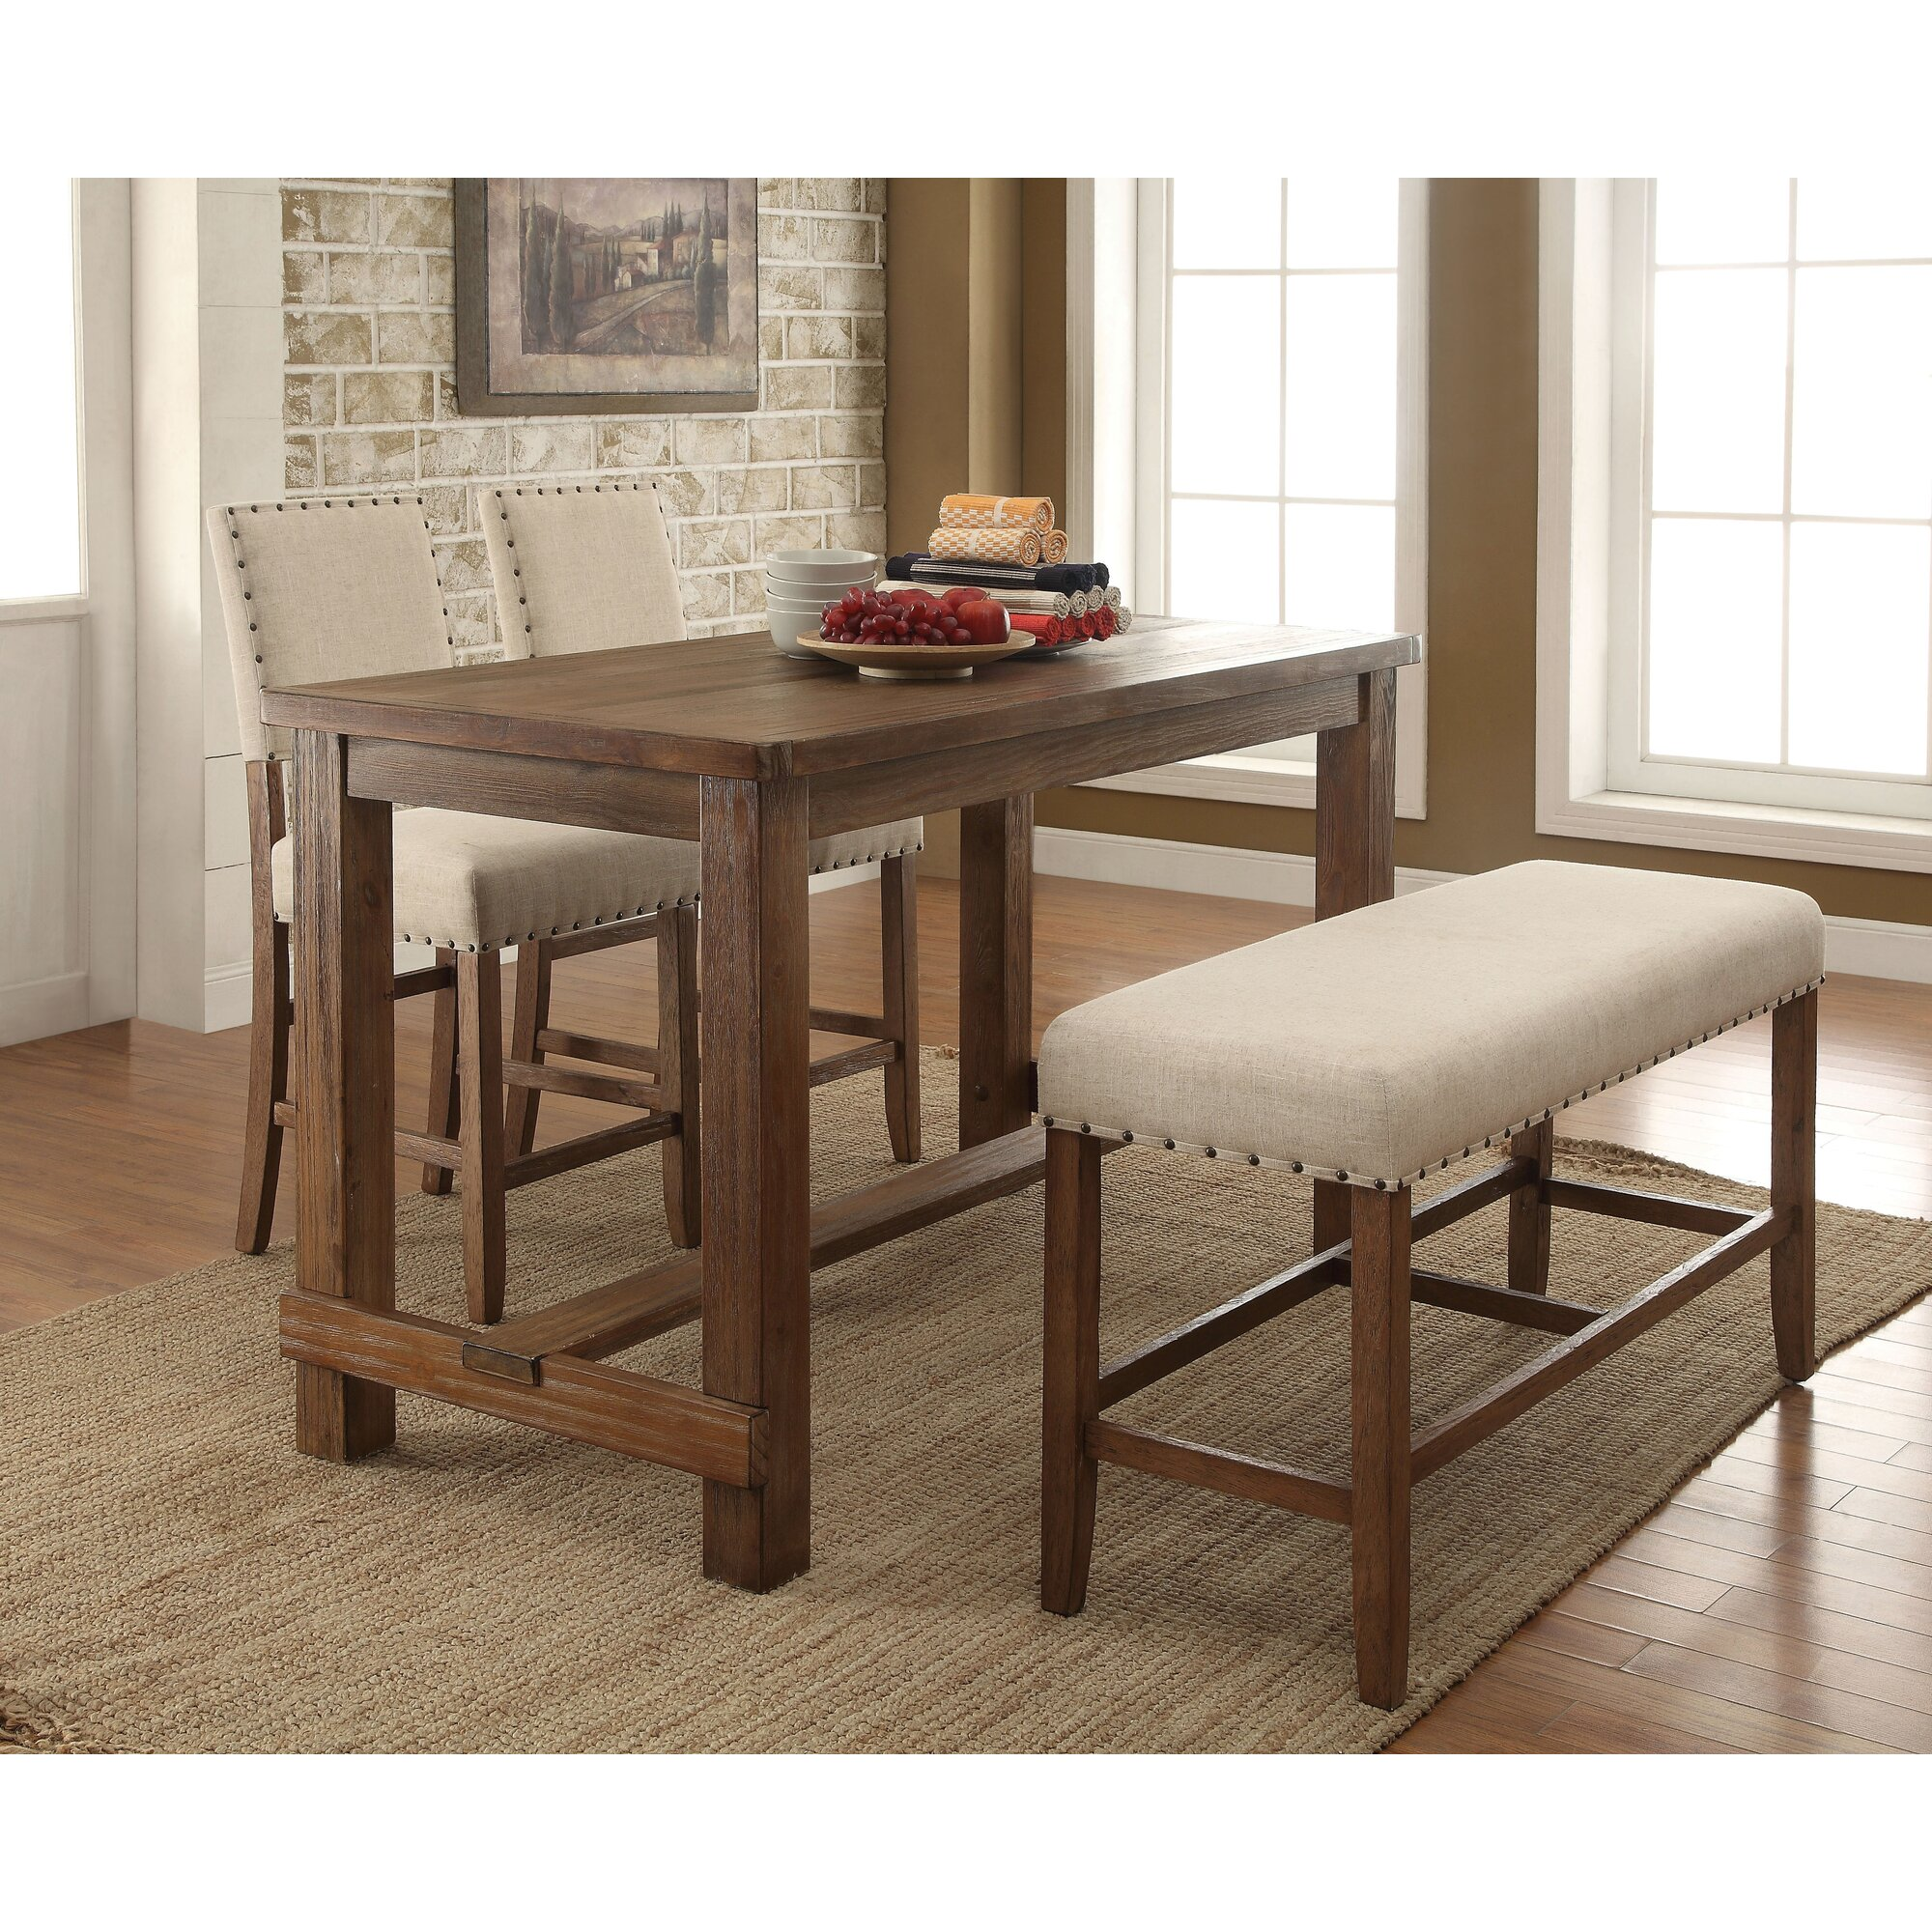 Normal Dining Table Height In Cm Rectangular Kitchen Table Room